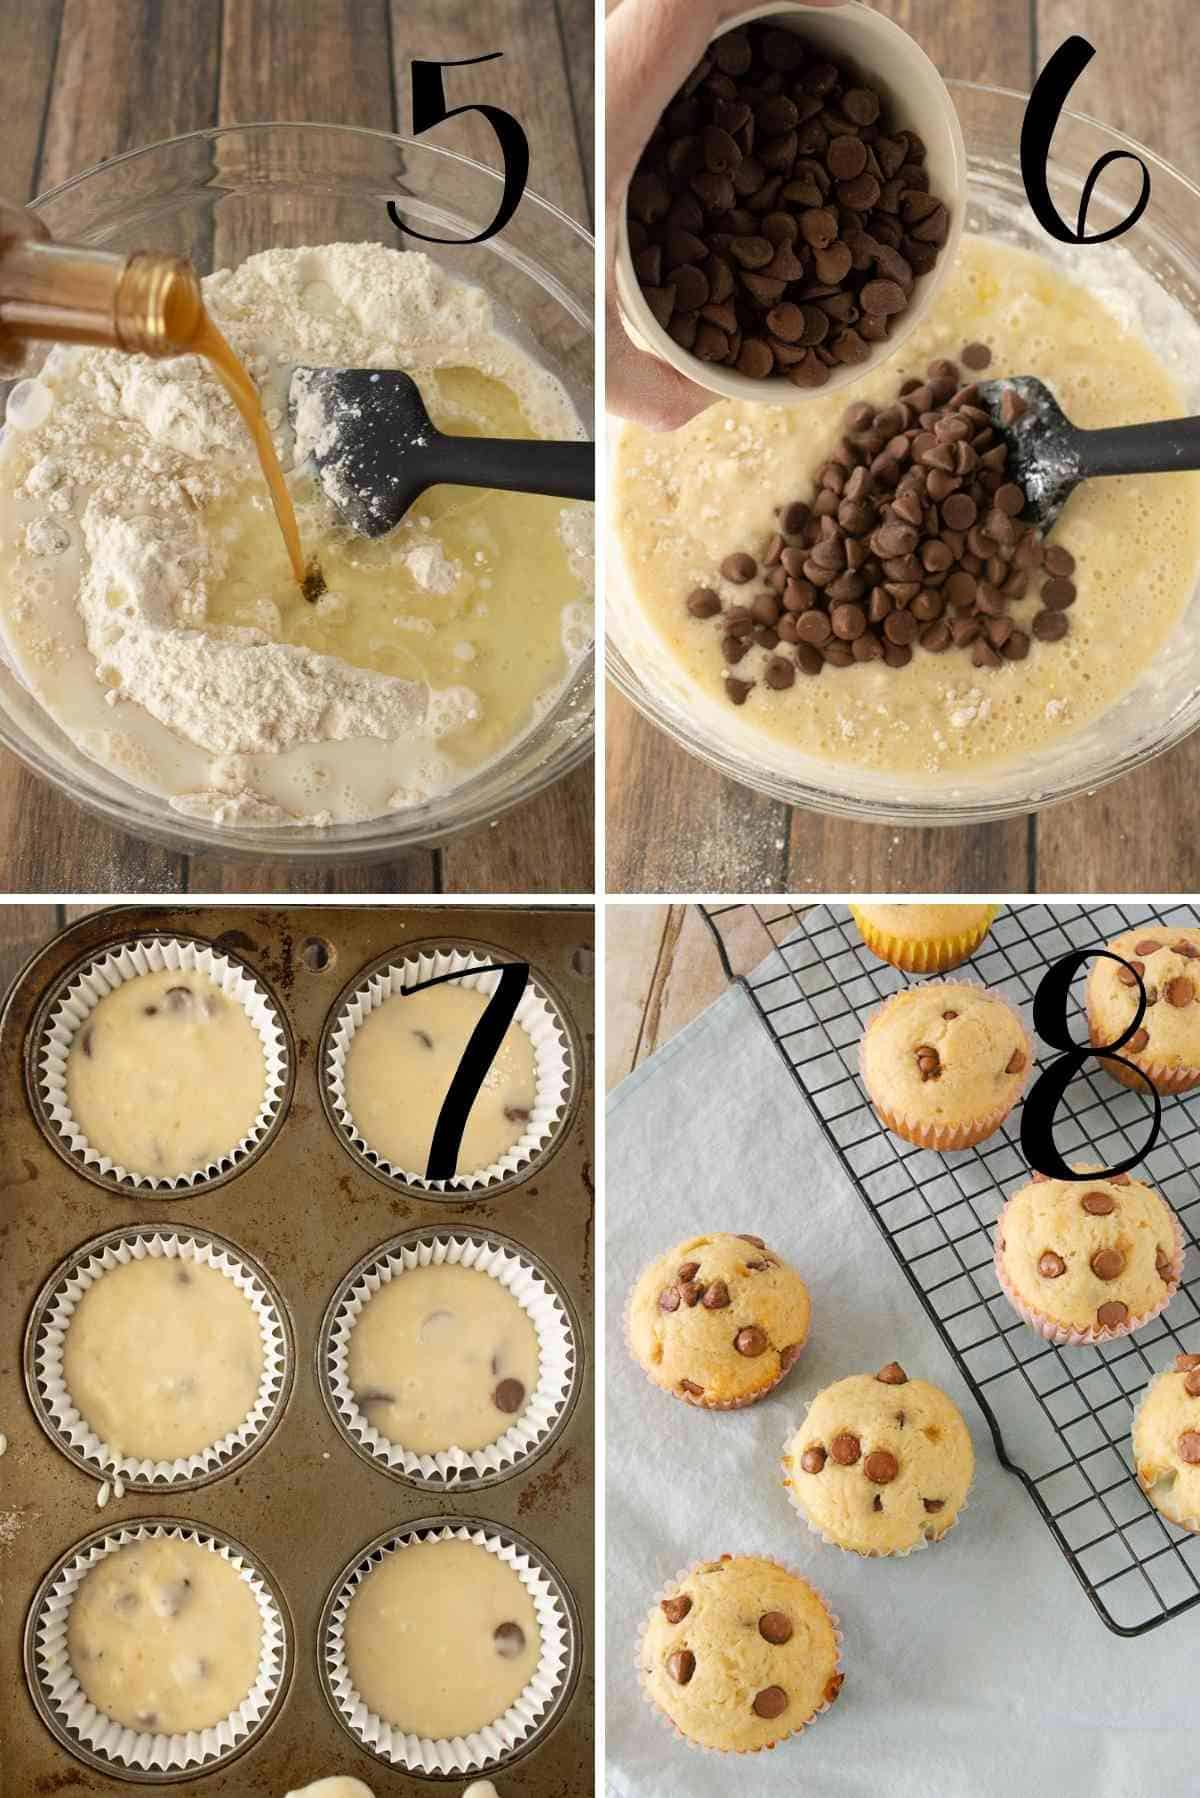 Chocolate chips added, mixed in and batter scooped into a muffin tin.